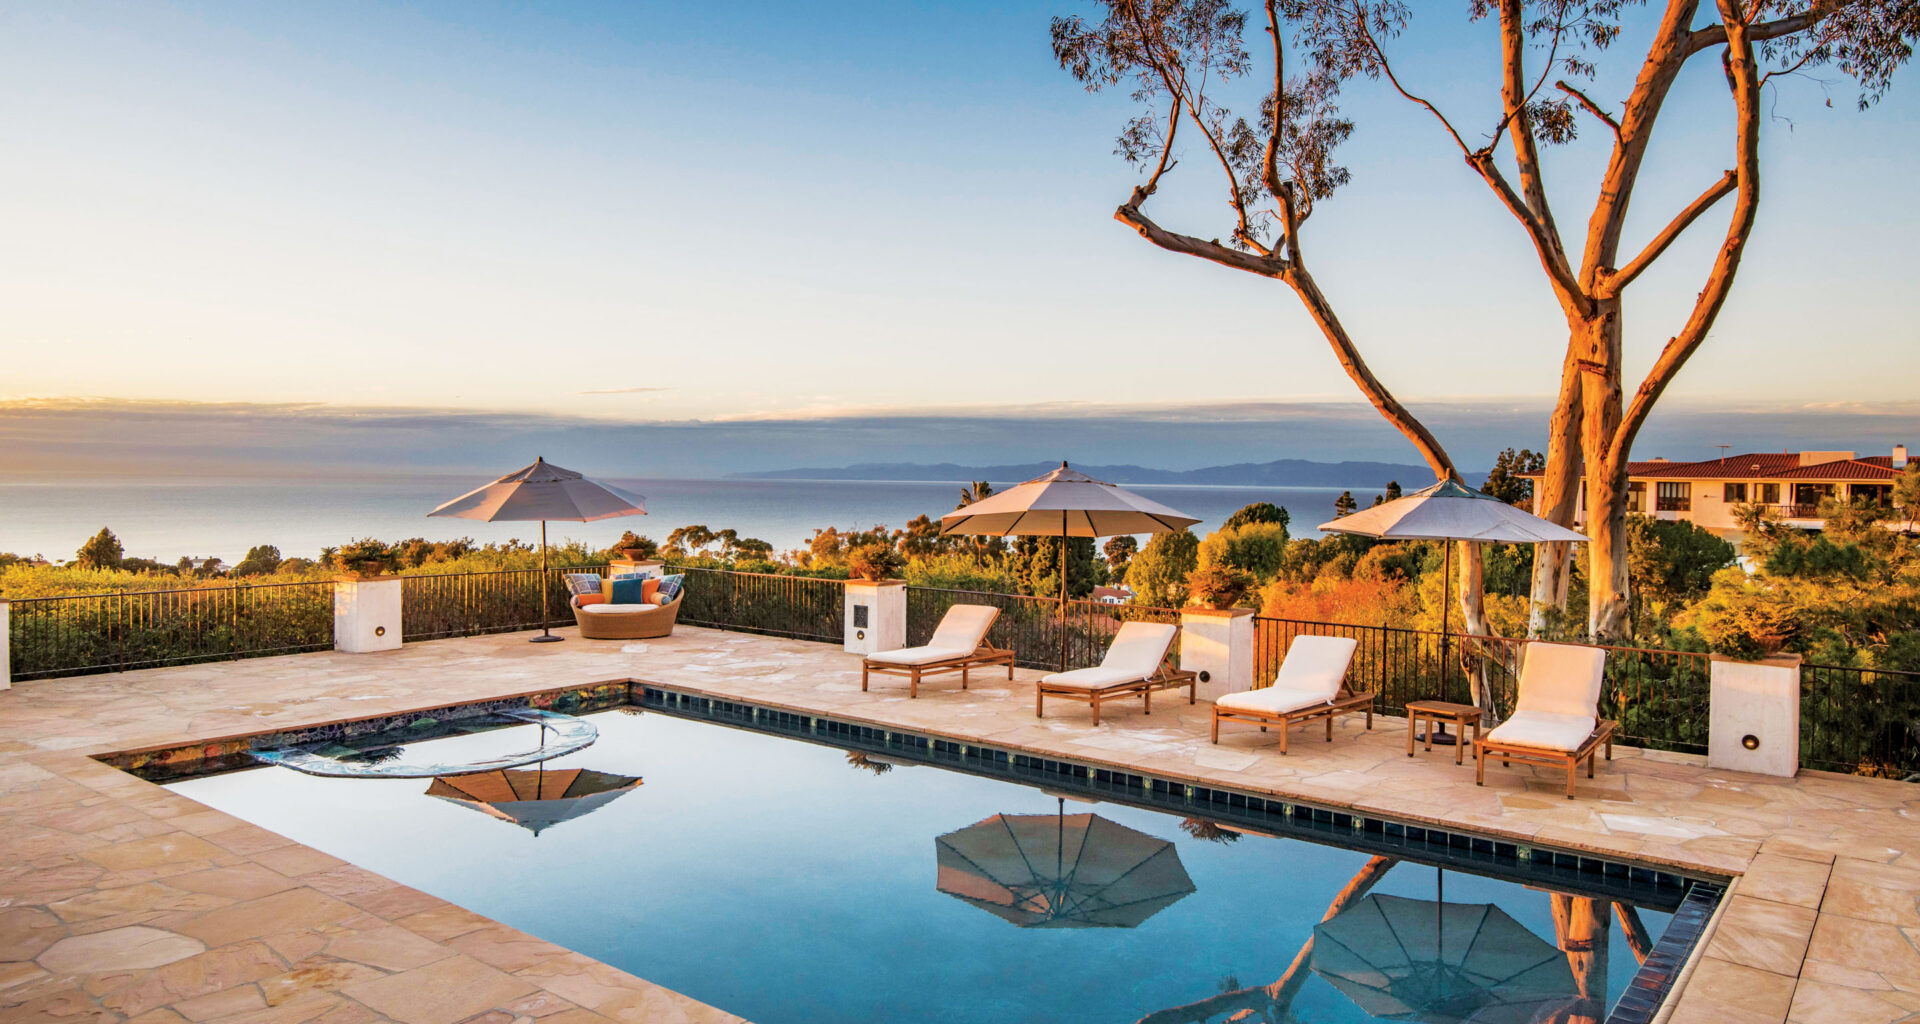 south bay digs - oceanview from pool house